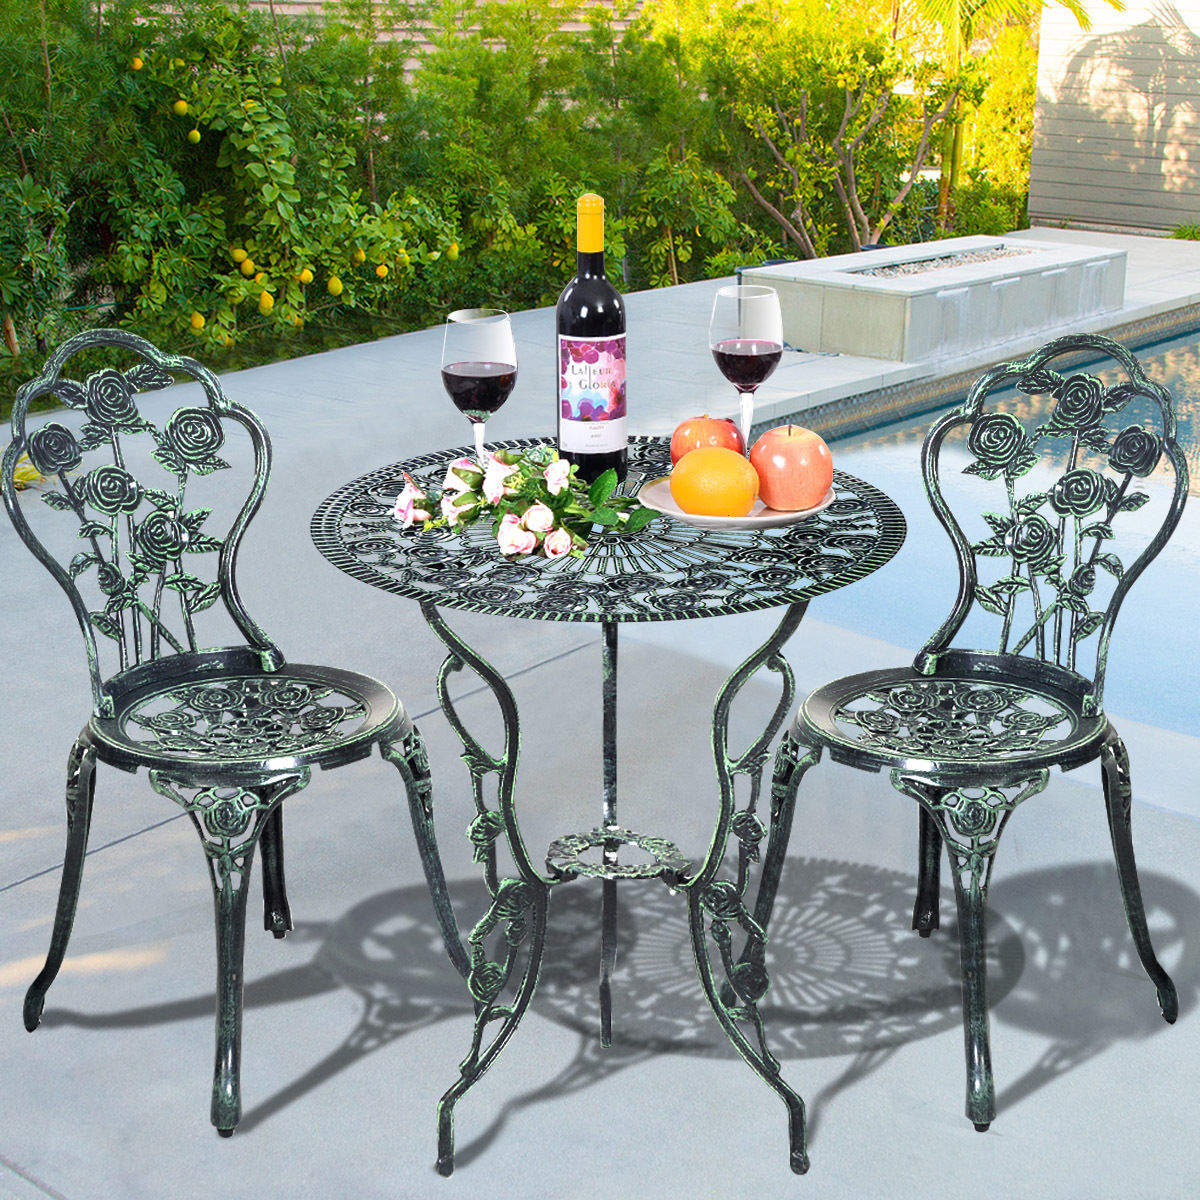 Cast Aluminum Bistro Rose Furniture Set - Outdoor Furniture Sets - Outdoor  Furniture - Furniture - Cast Aluminum Bistro Rose Furniture Set - Outdoor Furniture Sets